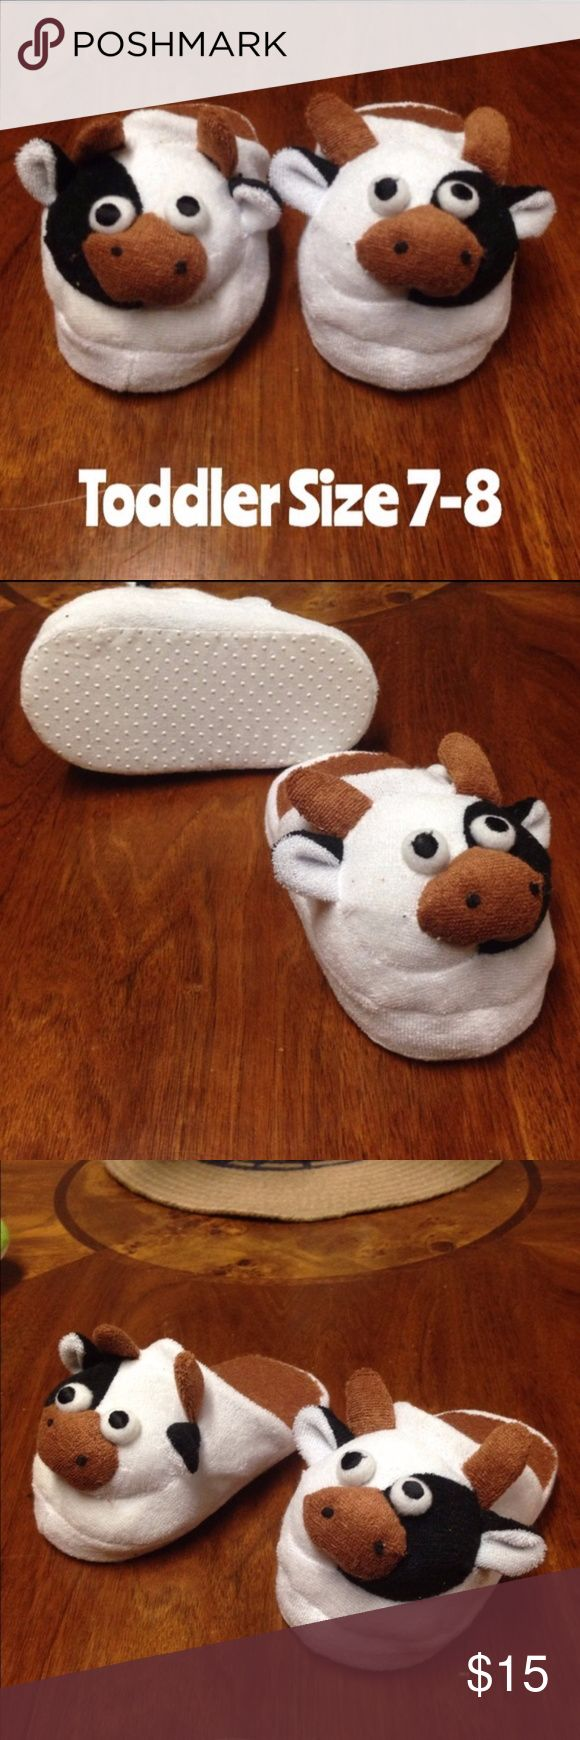 """30% off Bundles     NWOT 6"""" Cow Slippers 7-8 MOO MOO These are so CUTE. Tour little one will adore them. Perfect gift for a boy or girl. Cow slippers  size 6"""". Please measure your child's foot. These measure 6"""" from front to back. Shoes Slippers"""